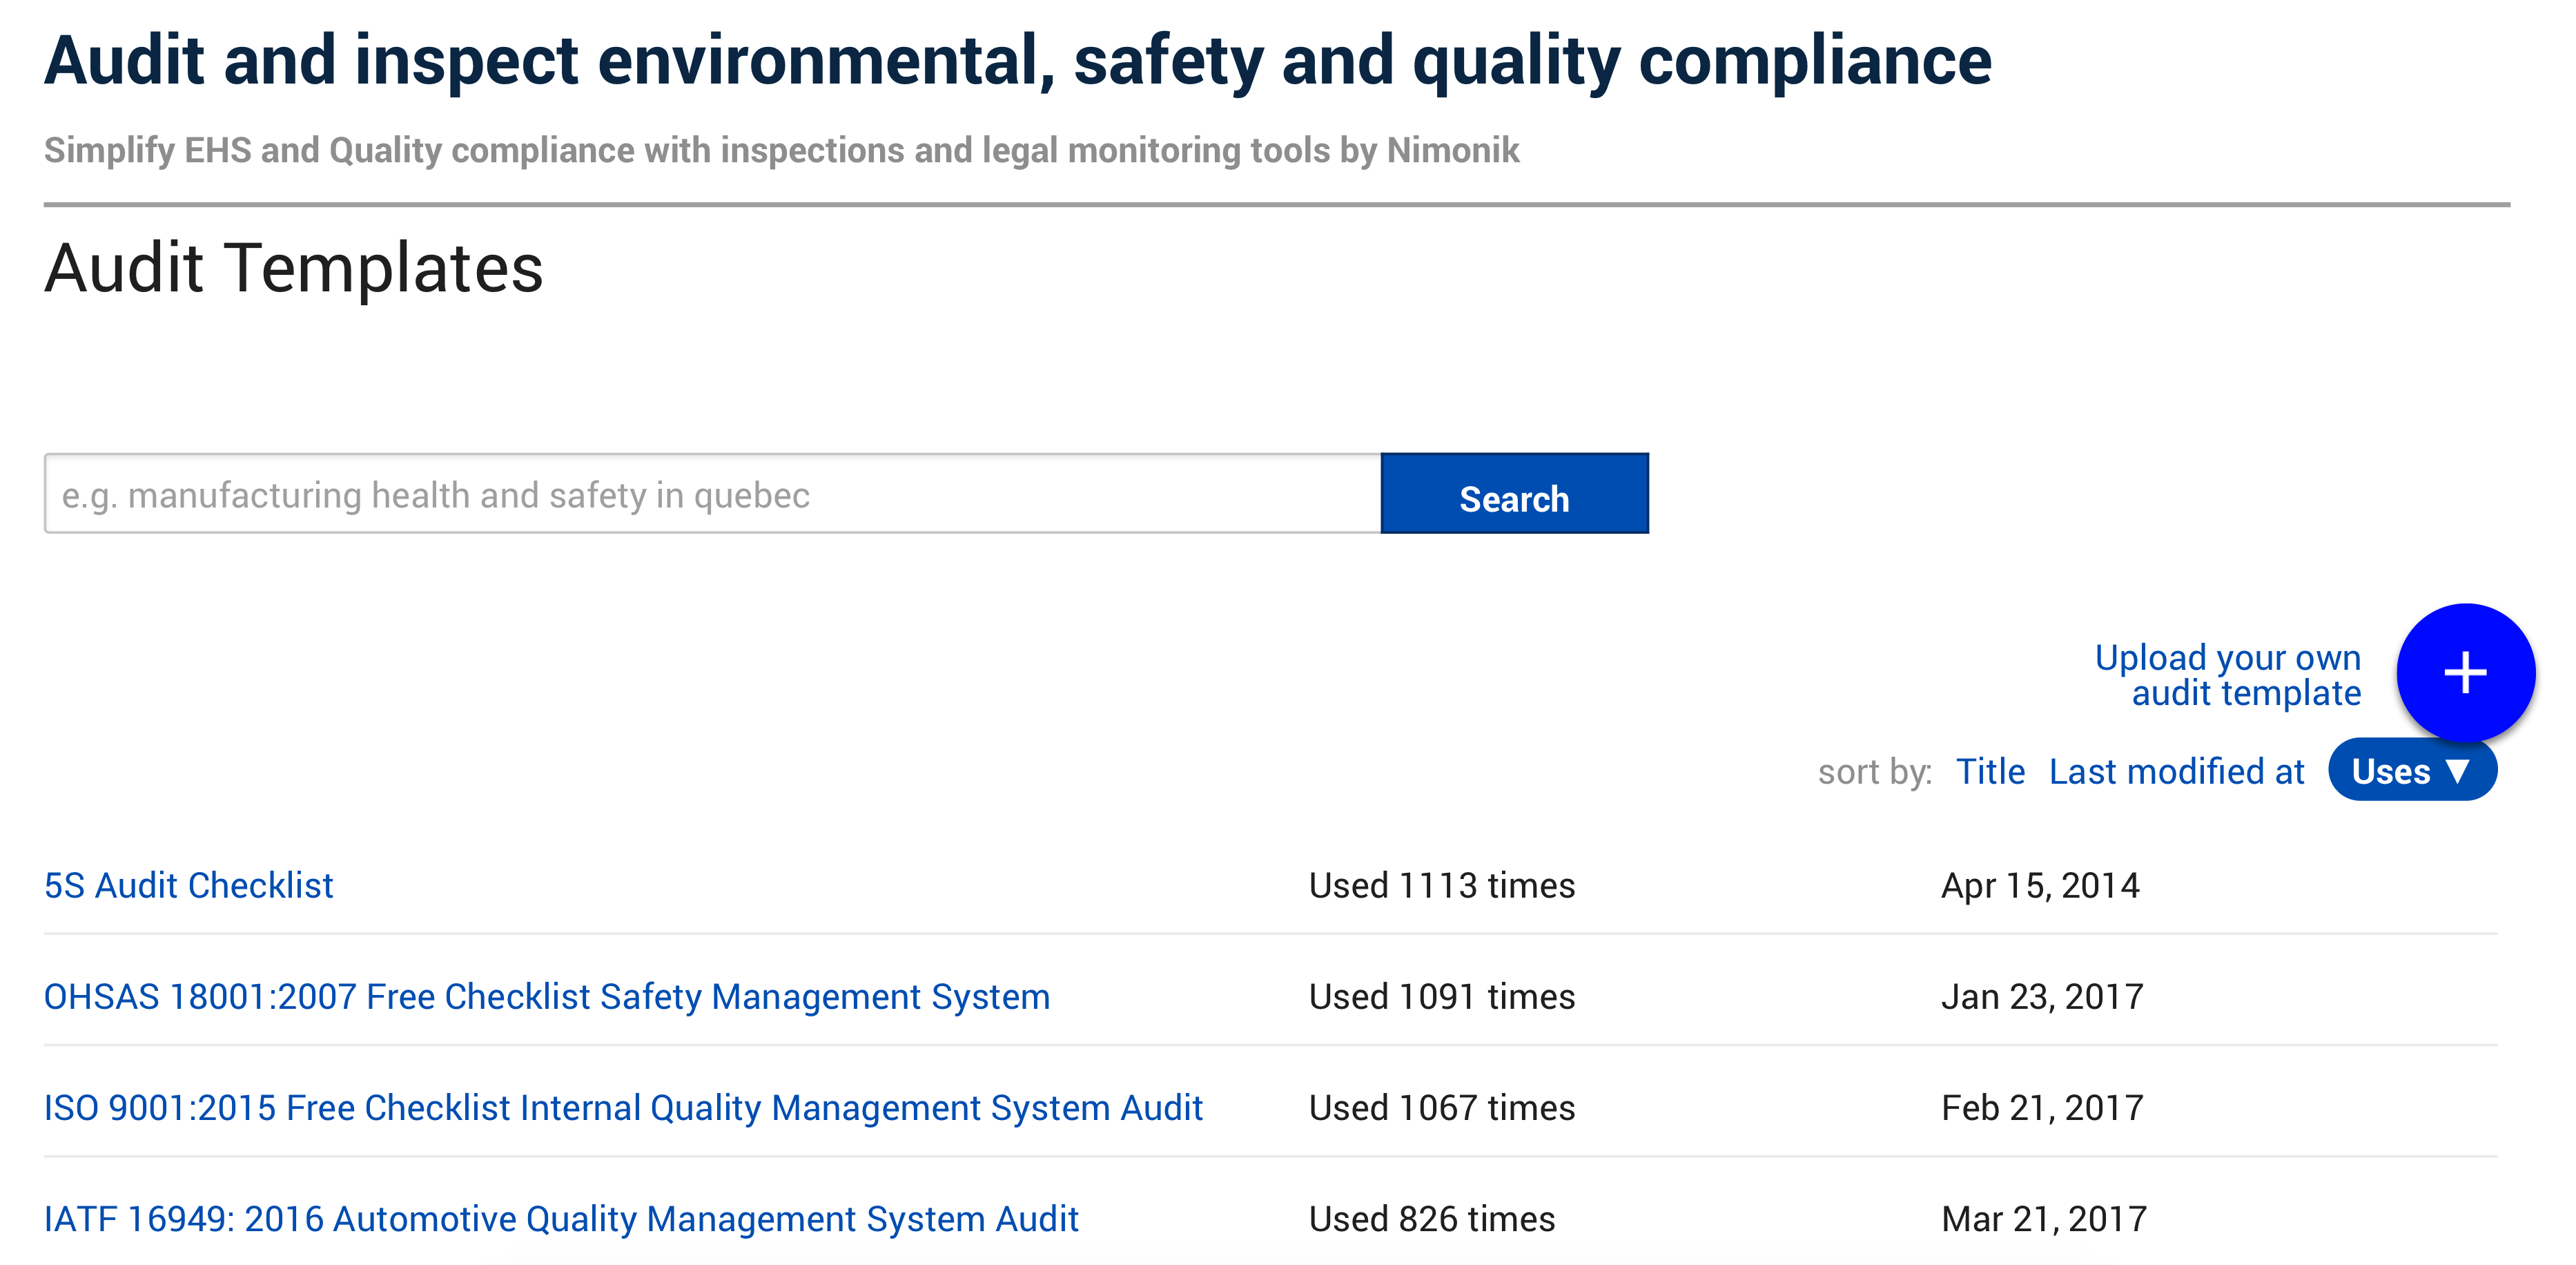 Audit and inspect safety, environmental and quality issues